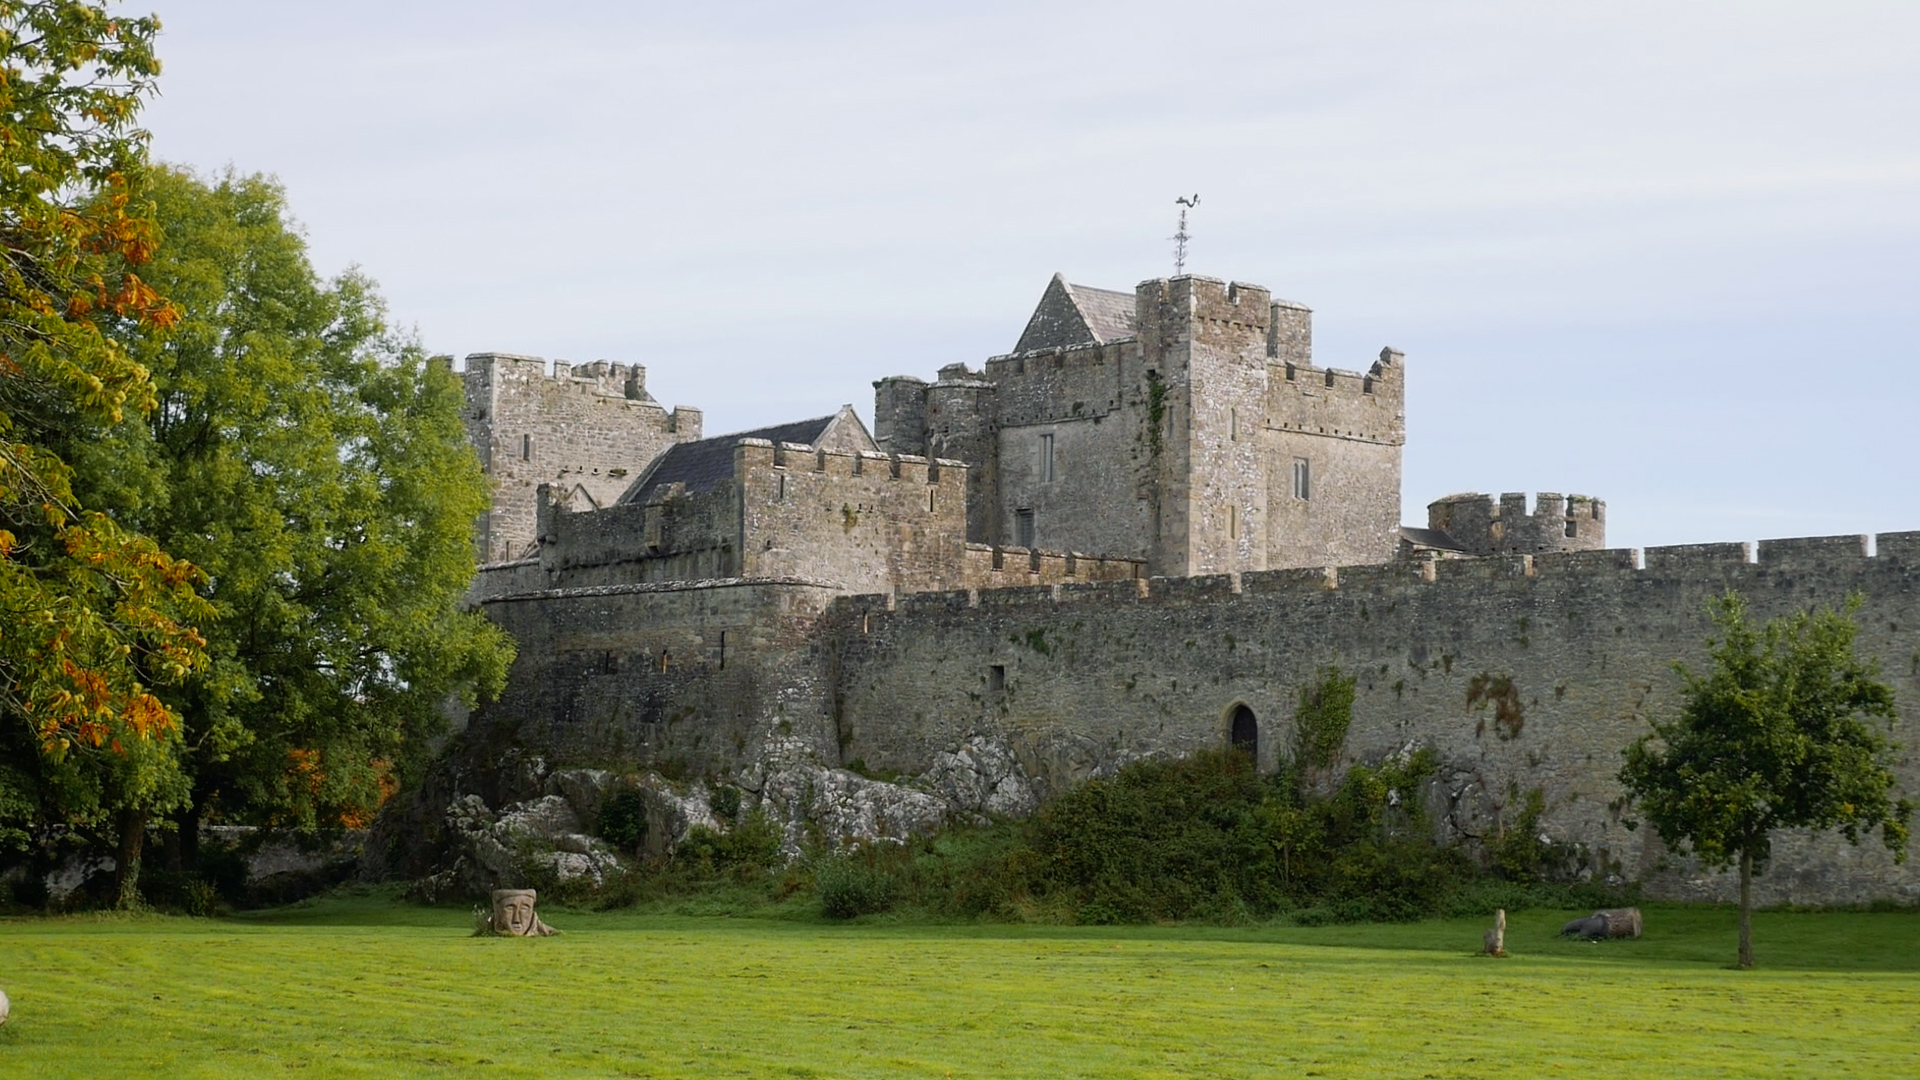 Cahir Castle - Cahir, Co. Tipperary